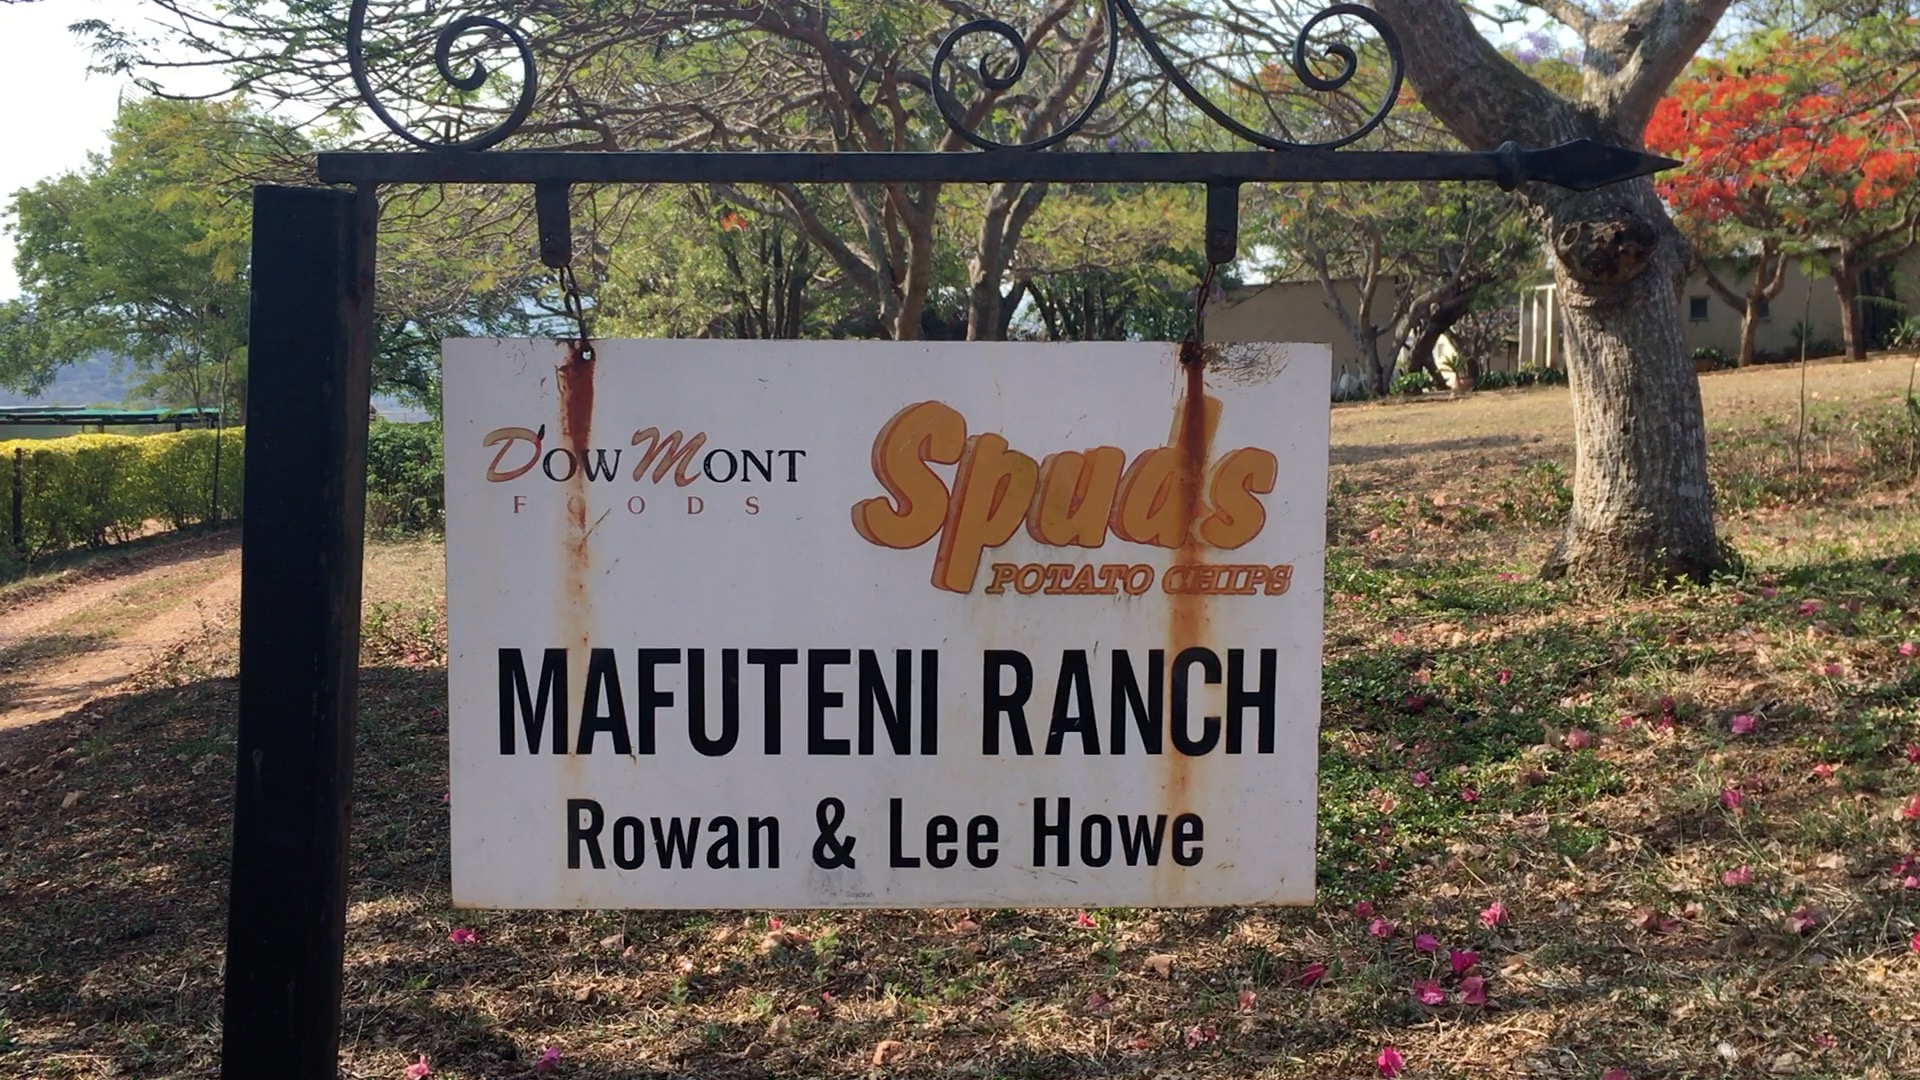 Mafuteni Ranch